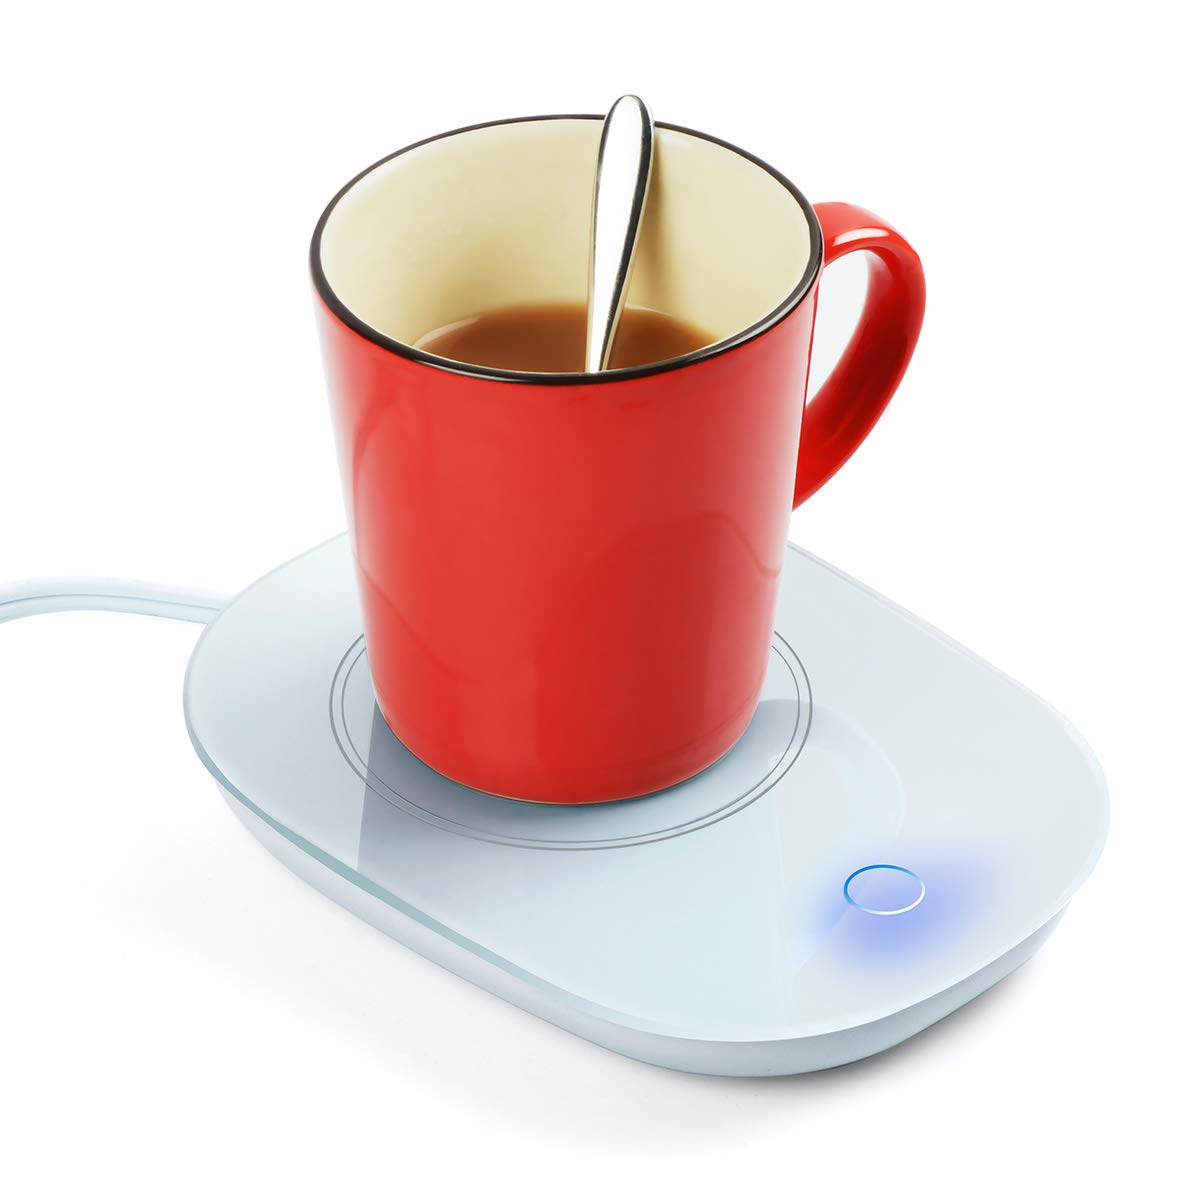 Yuntec Coffee Mug Warmer, Cup Heater for Desk Coffee Warmer Beverage Warmer Automatic Thermostatic Smart Cup Heater for Coffee, Milk, Tea, Cocoa, Water, Home and Office Use - White